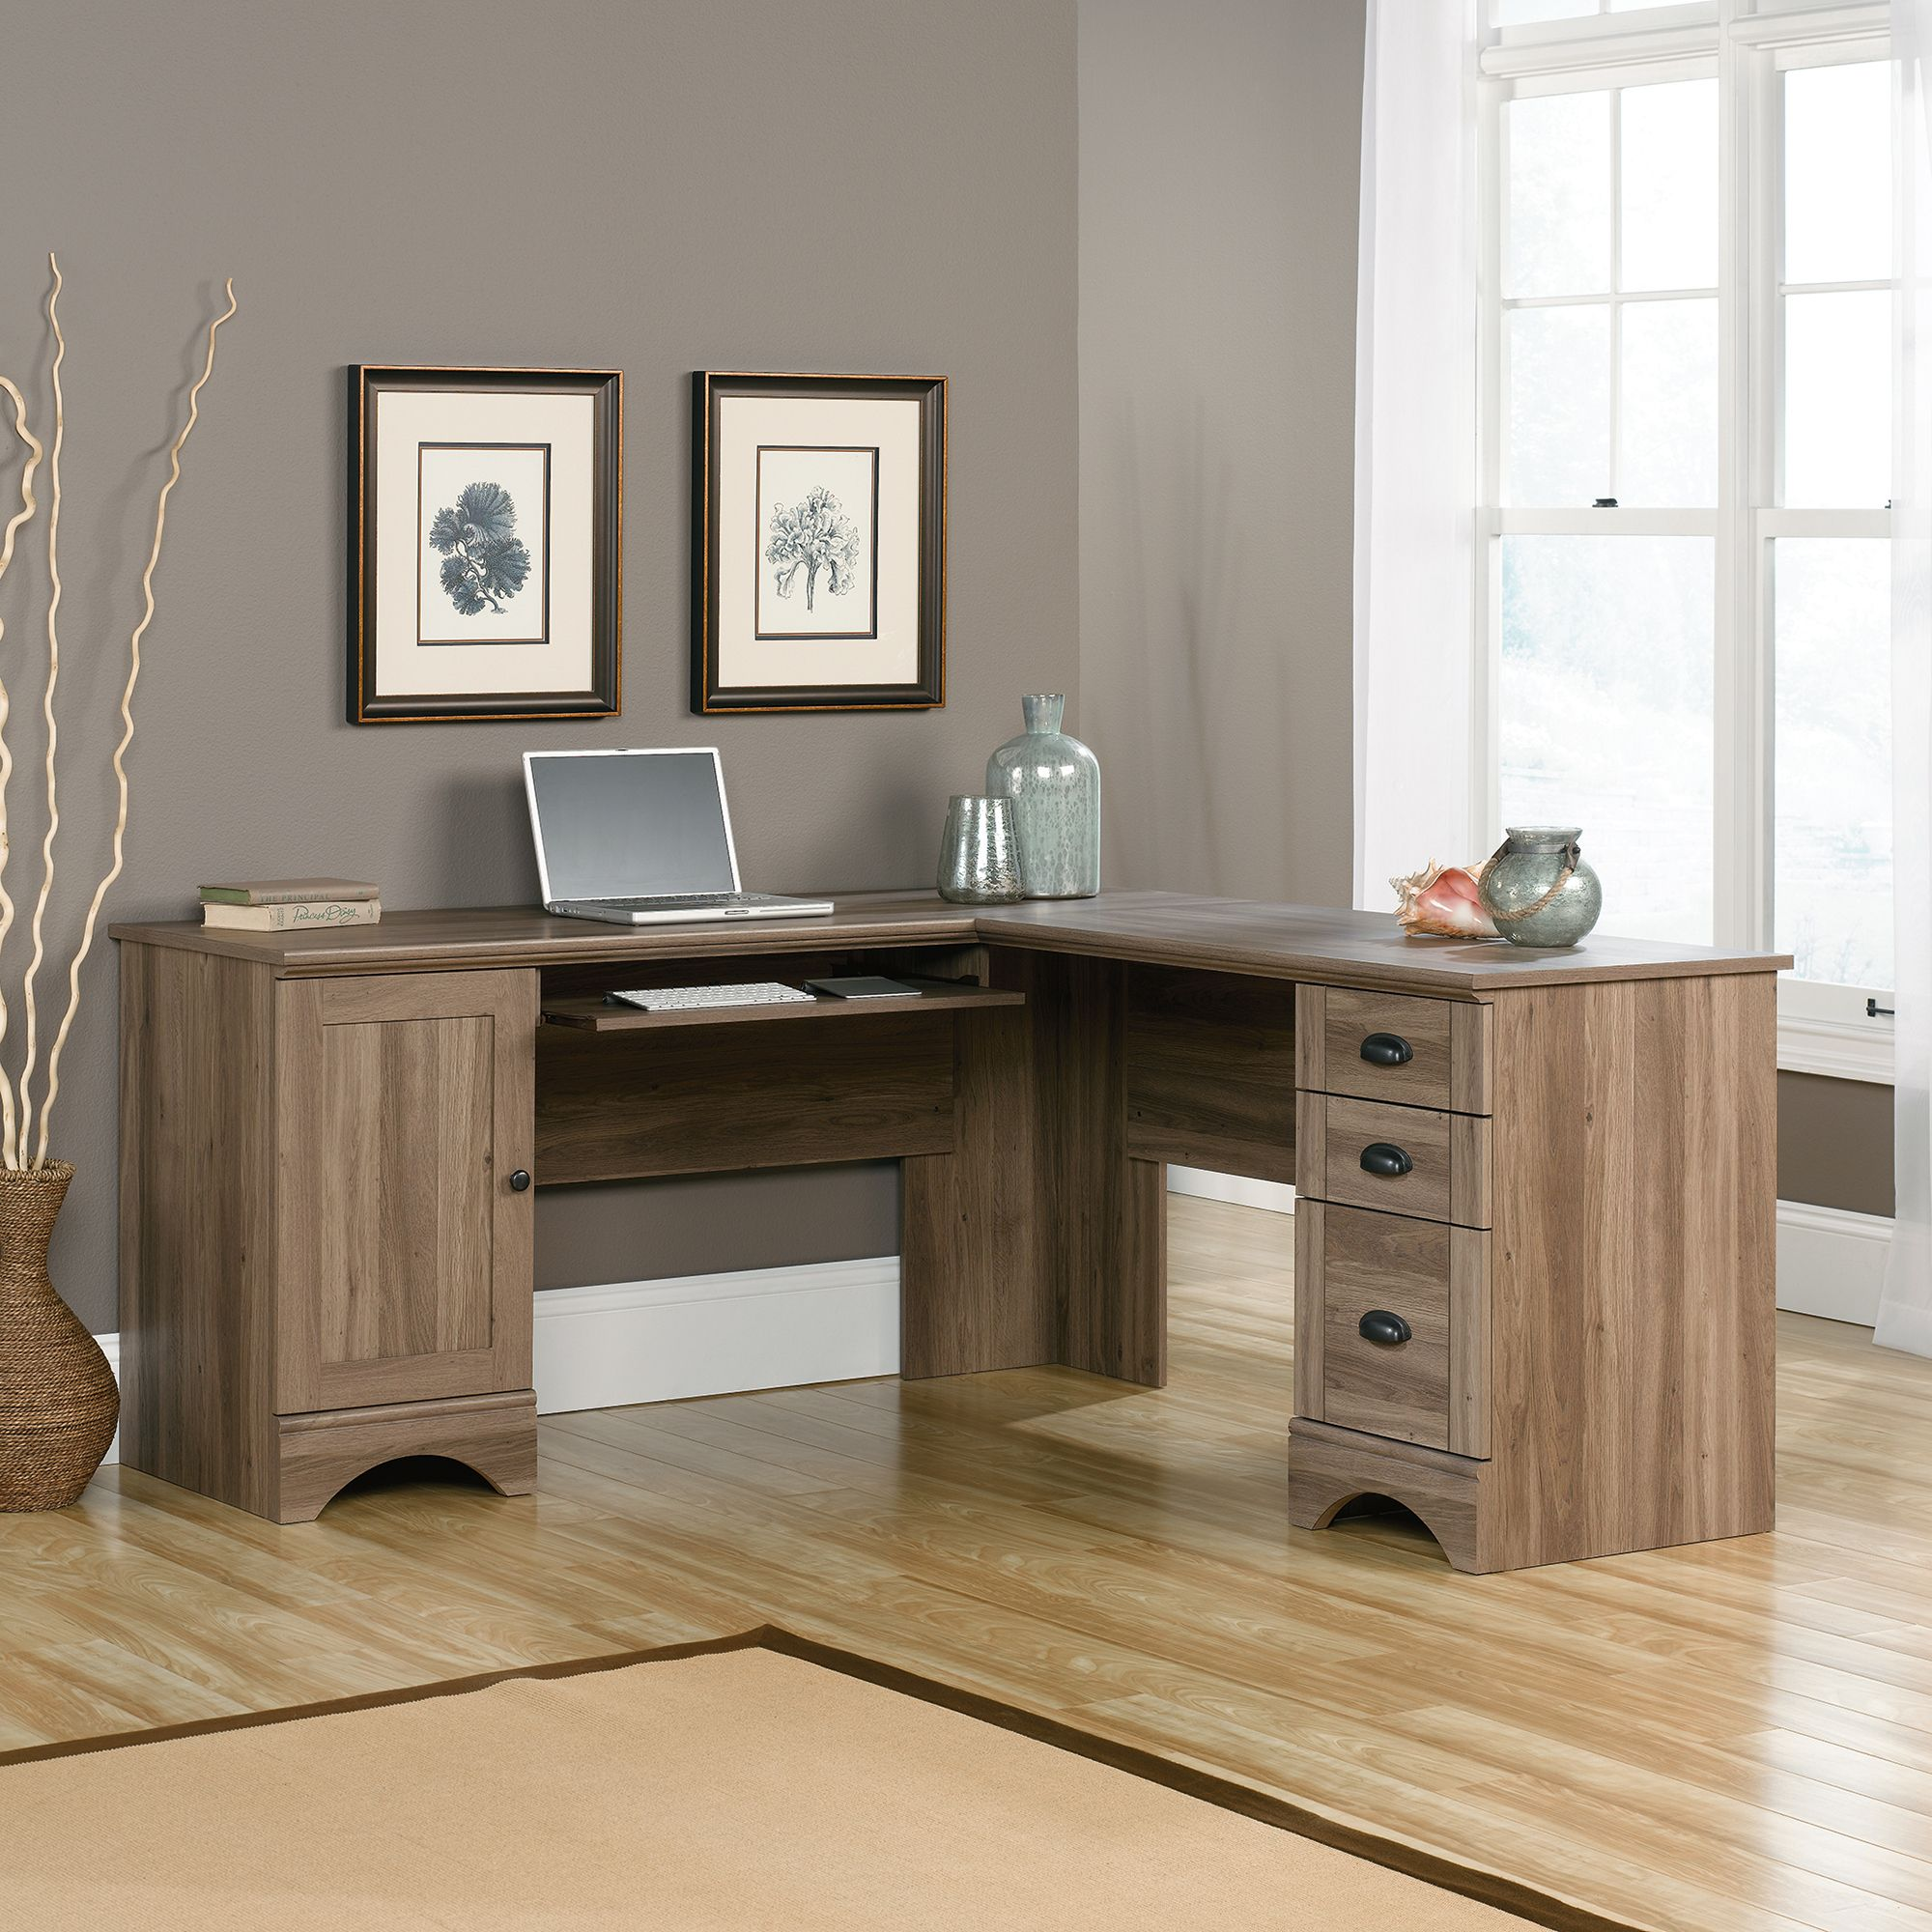 inspiring desk design cozy furniture dark executive harbor hutch computer and with corner com for shoal ideas flooring mcgrecords rugs desks on office drawers creek wood tile interesting feizy sauder view